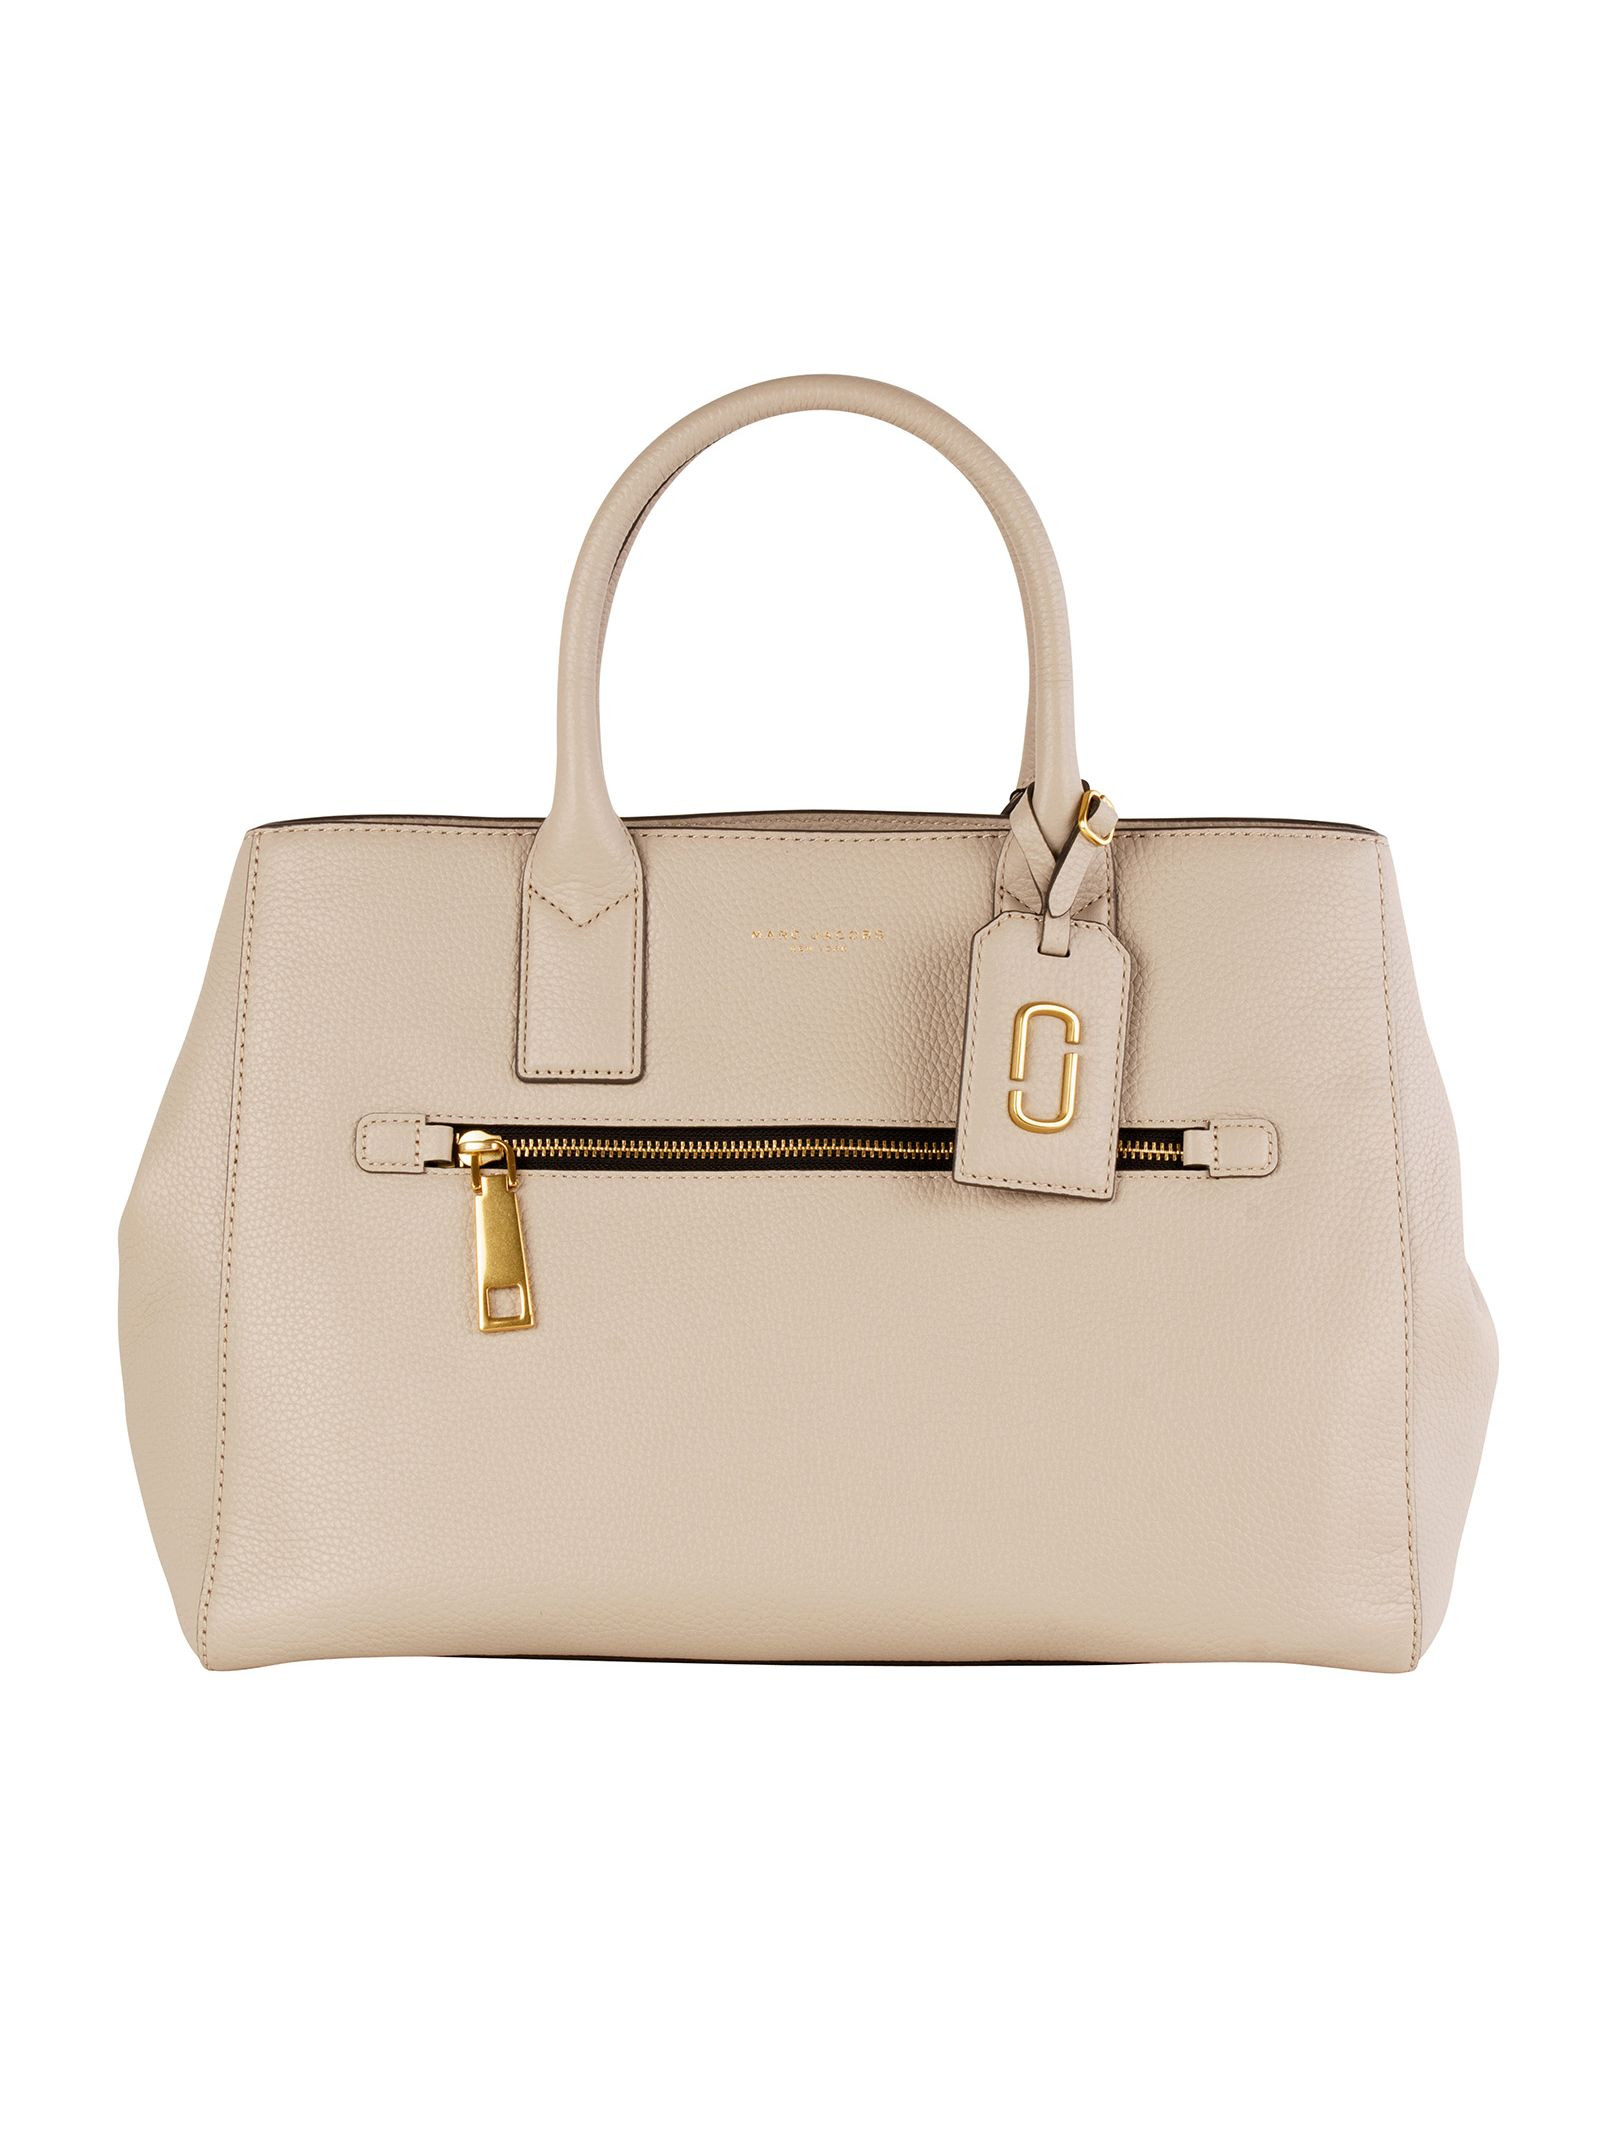 marc jacobs female marc jacobs grey leather handle bag